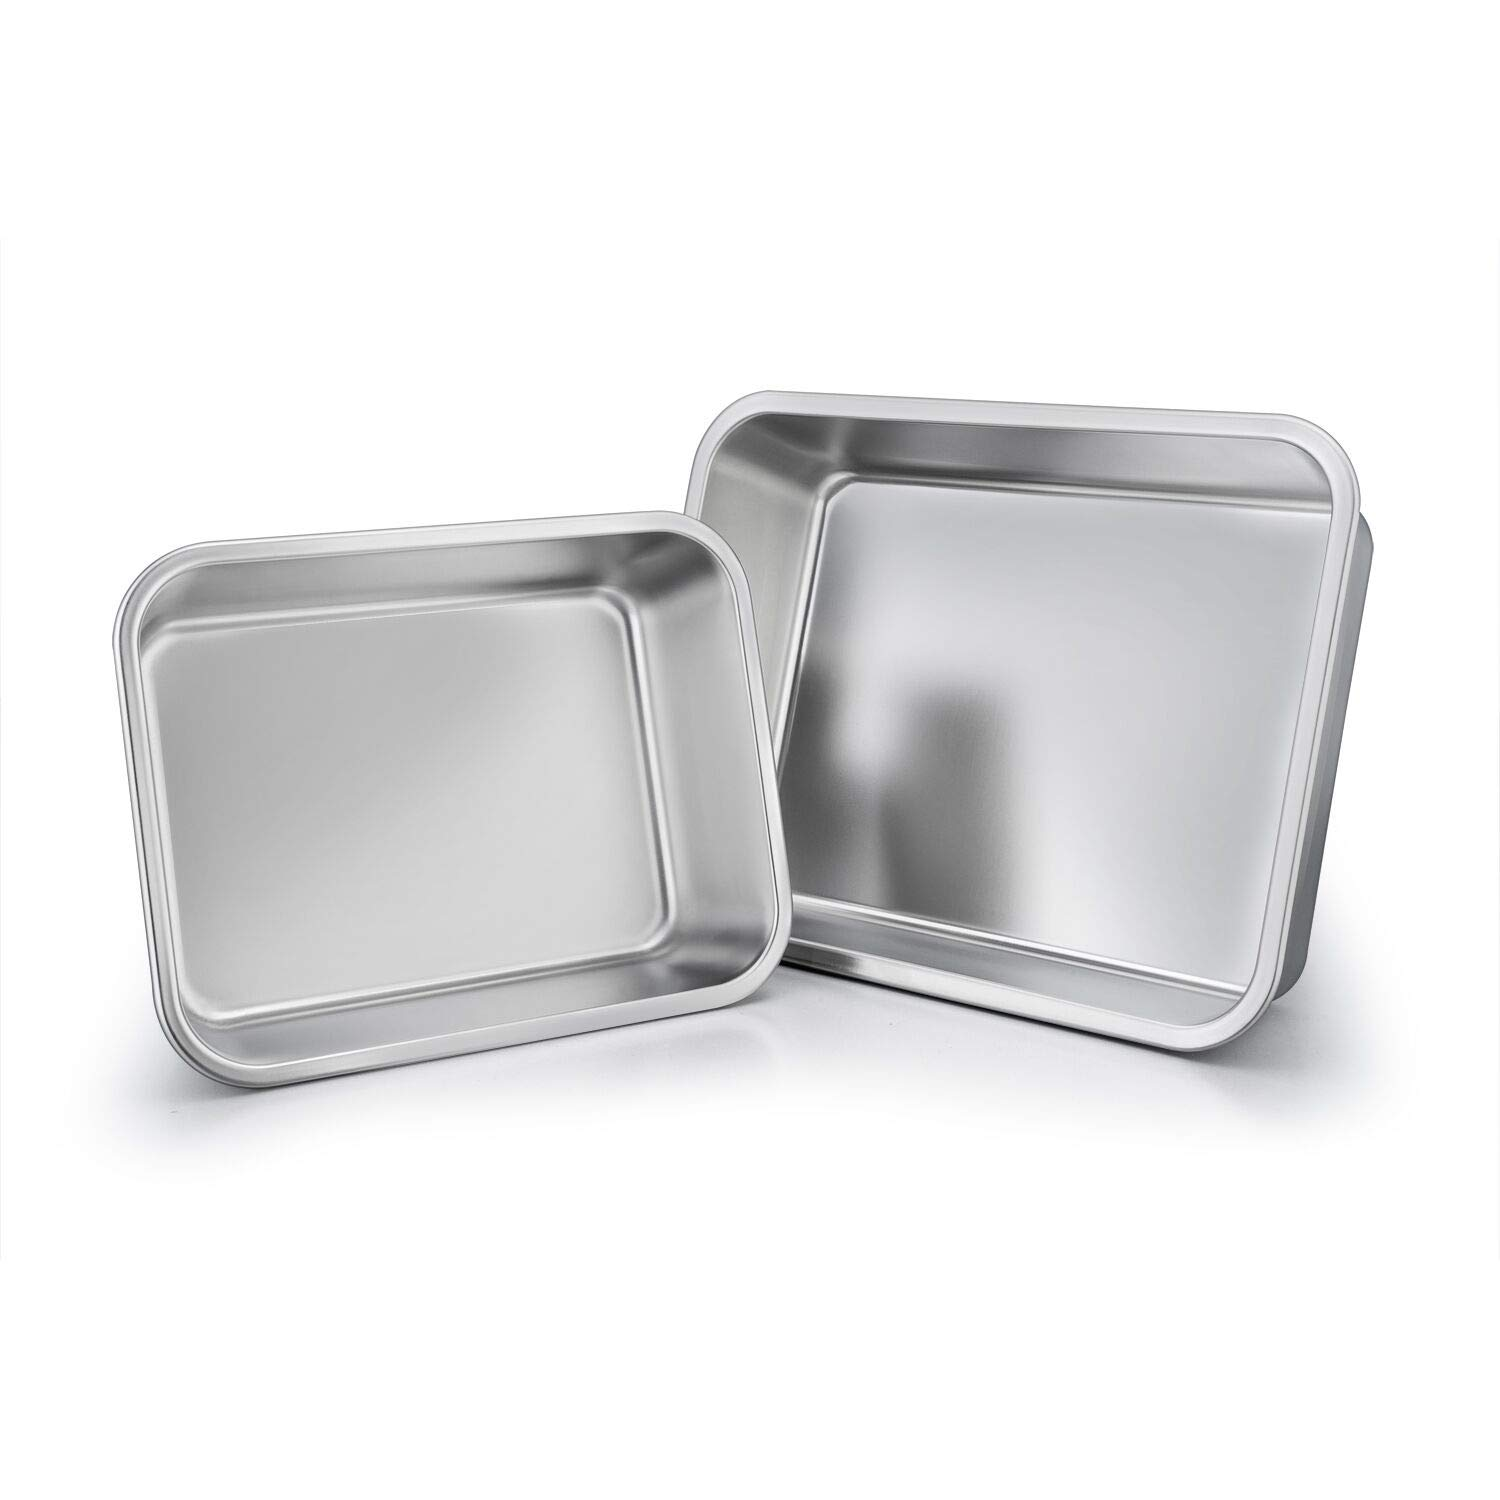 TeamFar Lasagna Pan Set of 2, Brownie Pan Rectangle Cake Pan Stainless Steel, Heavy Duty & Healthy, Easy Clean & Dishwasher safe, Brushed Surface-13 & 10 inch by TeamFar (Image #2)